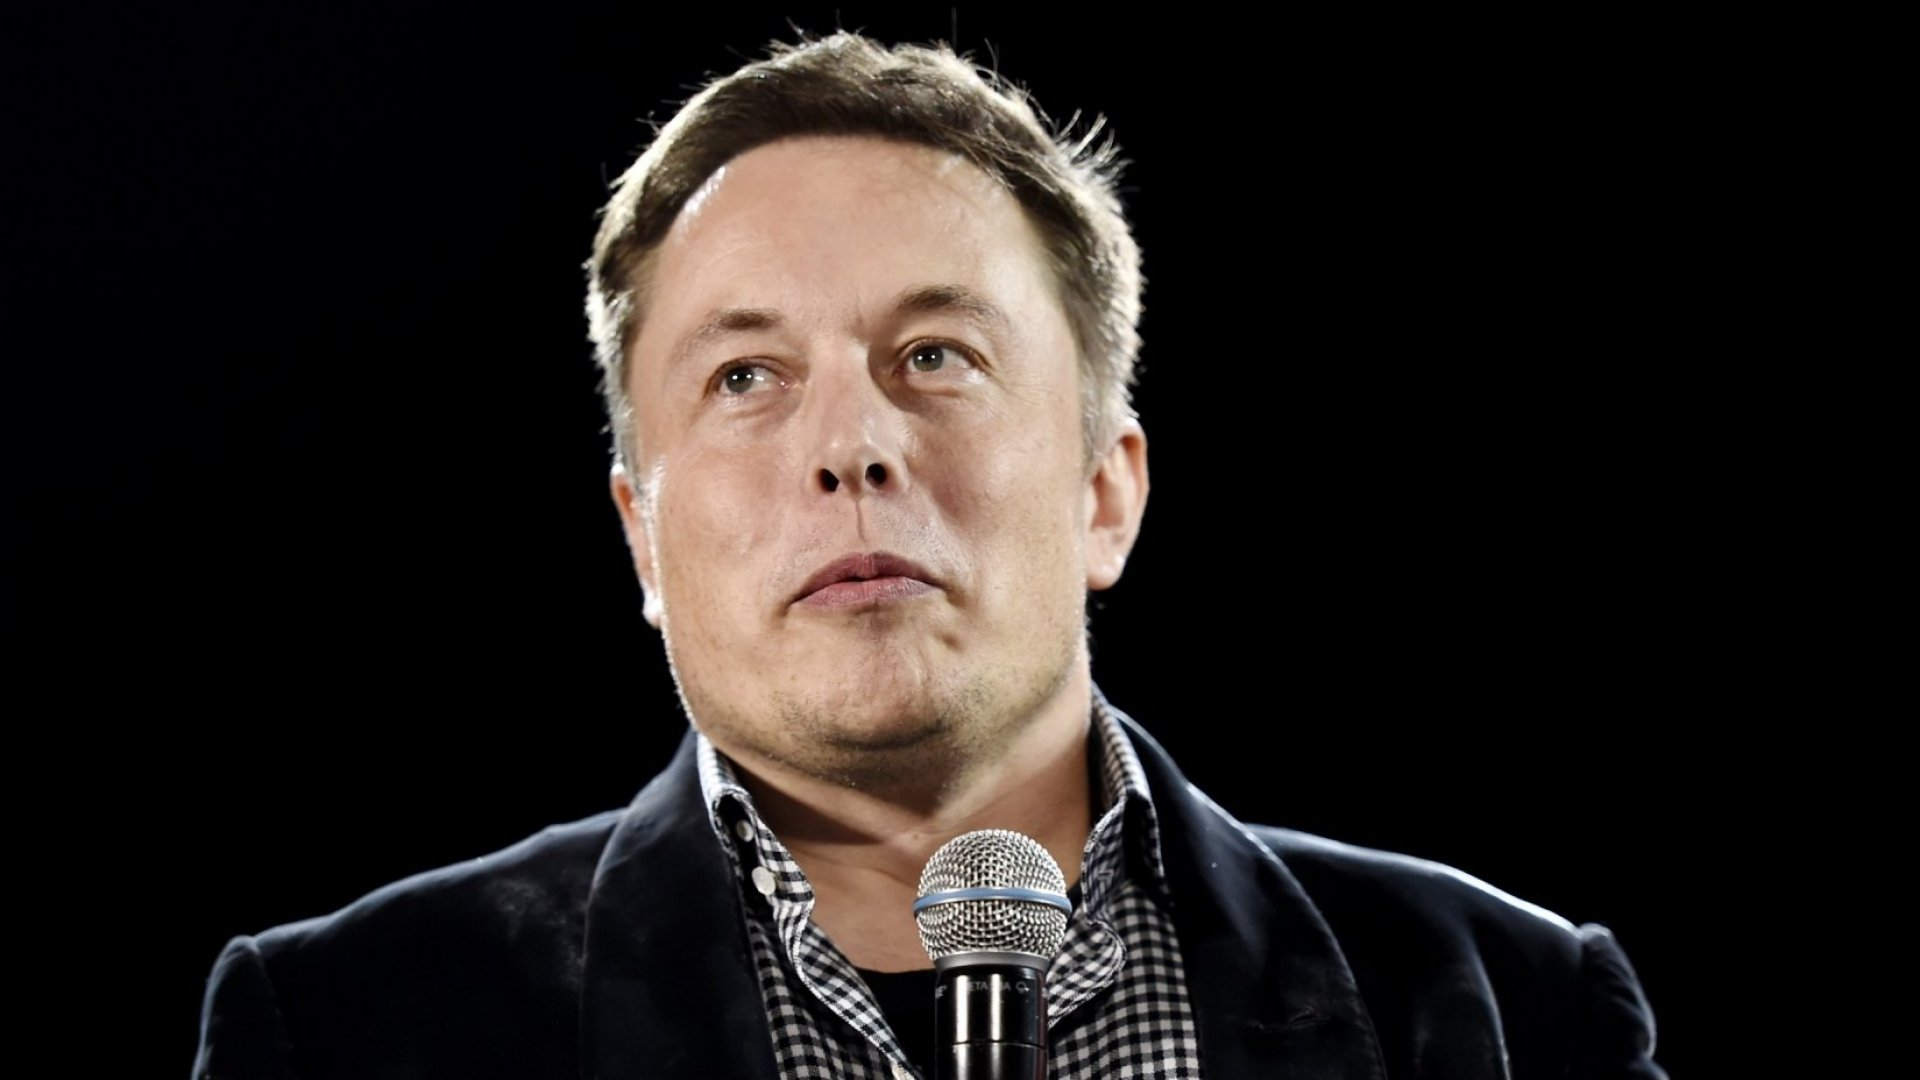 5 Great Elon Musk Quotes on Innovation